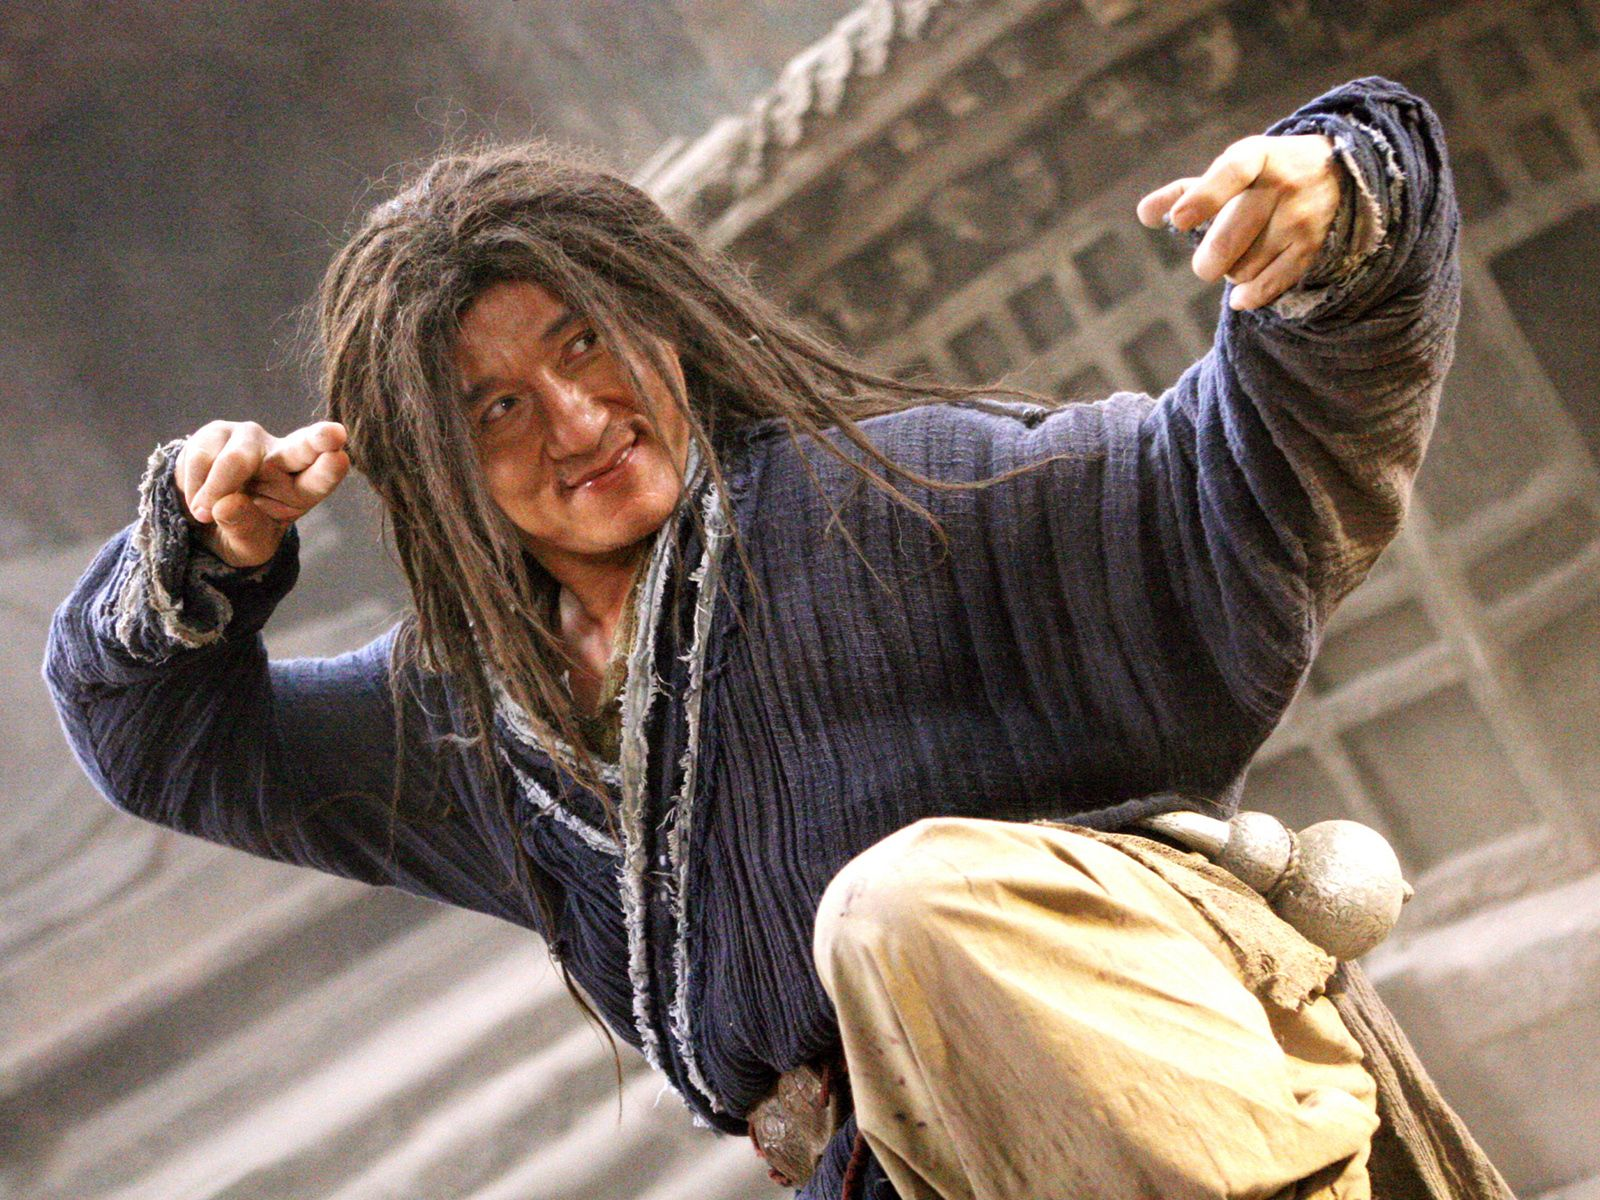 Download The Latest Jackie Chan Hd Wallpapers From Wallpapers111 Com